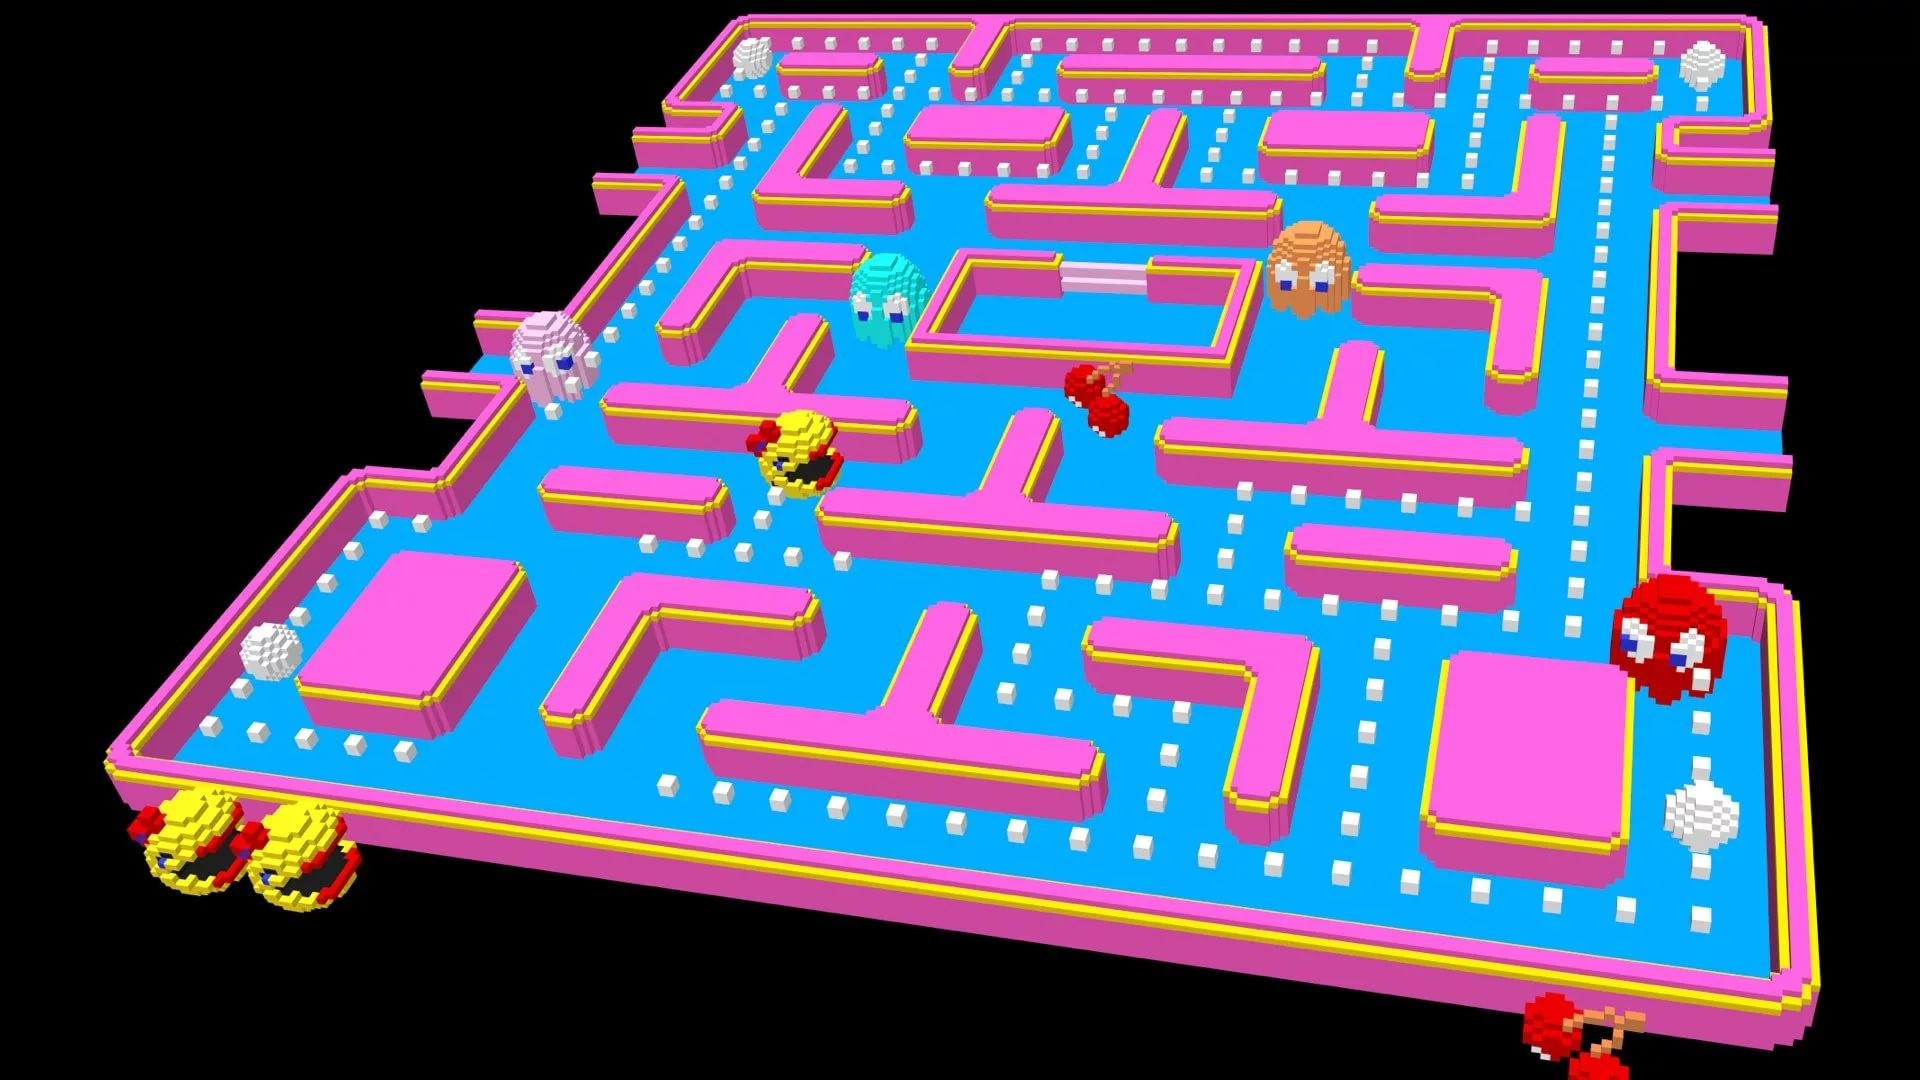 Res: 1920x1080, Pacman